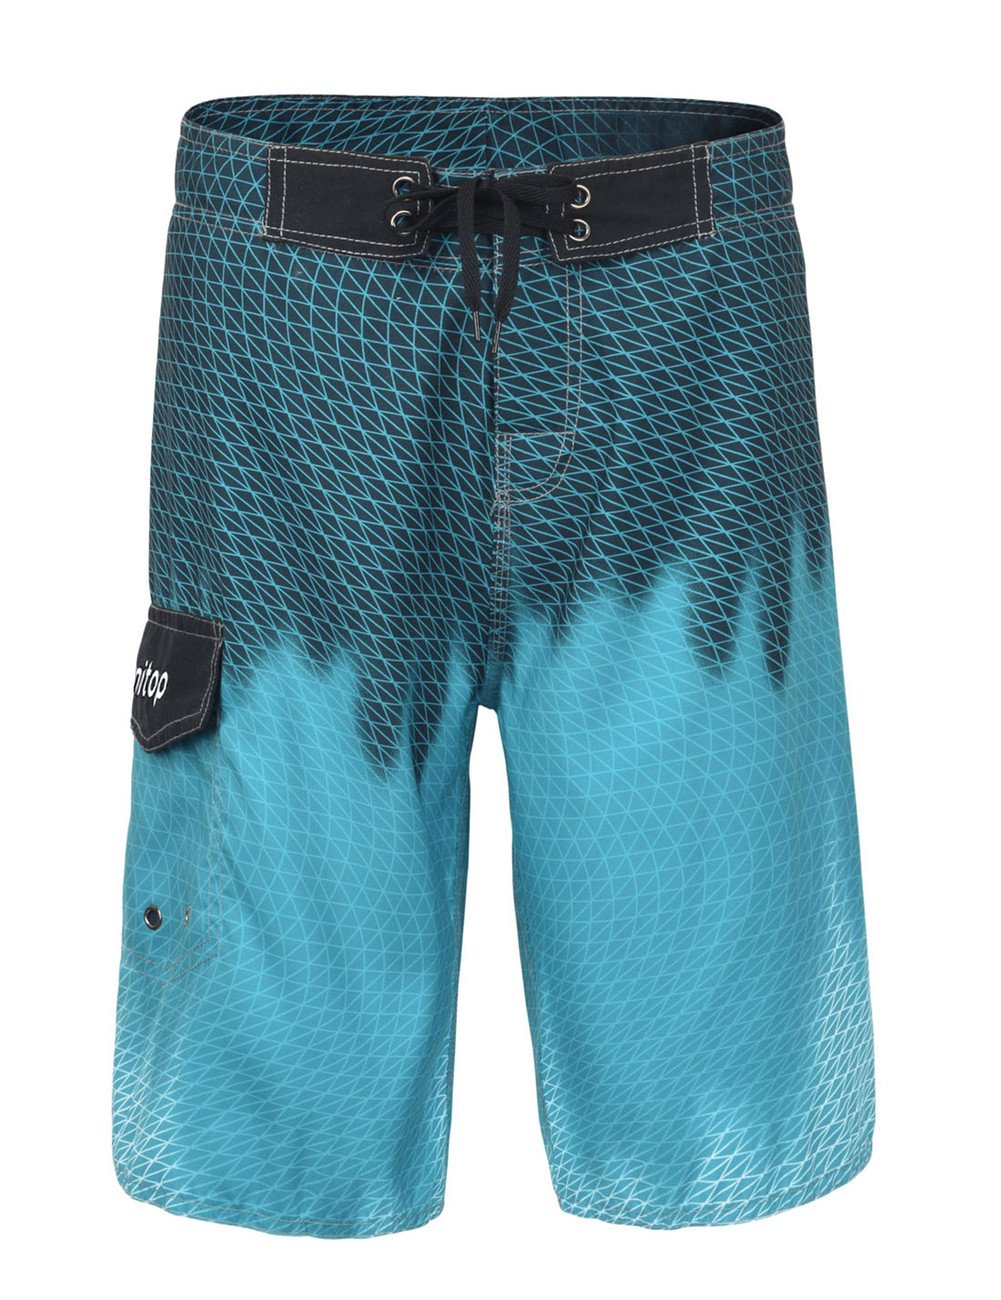 unitop Men's Tropical Color Swim Trunks with Mesh Lining Blazing Blue-30